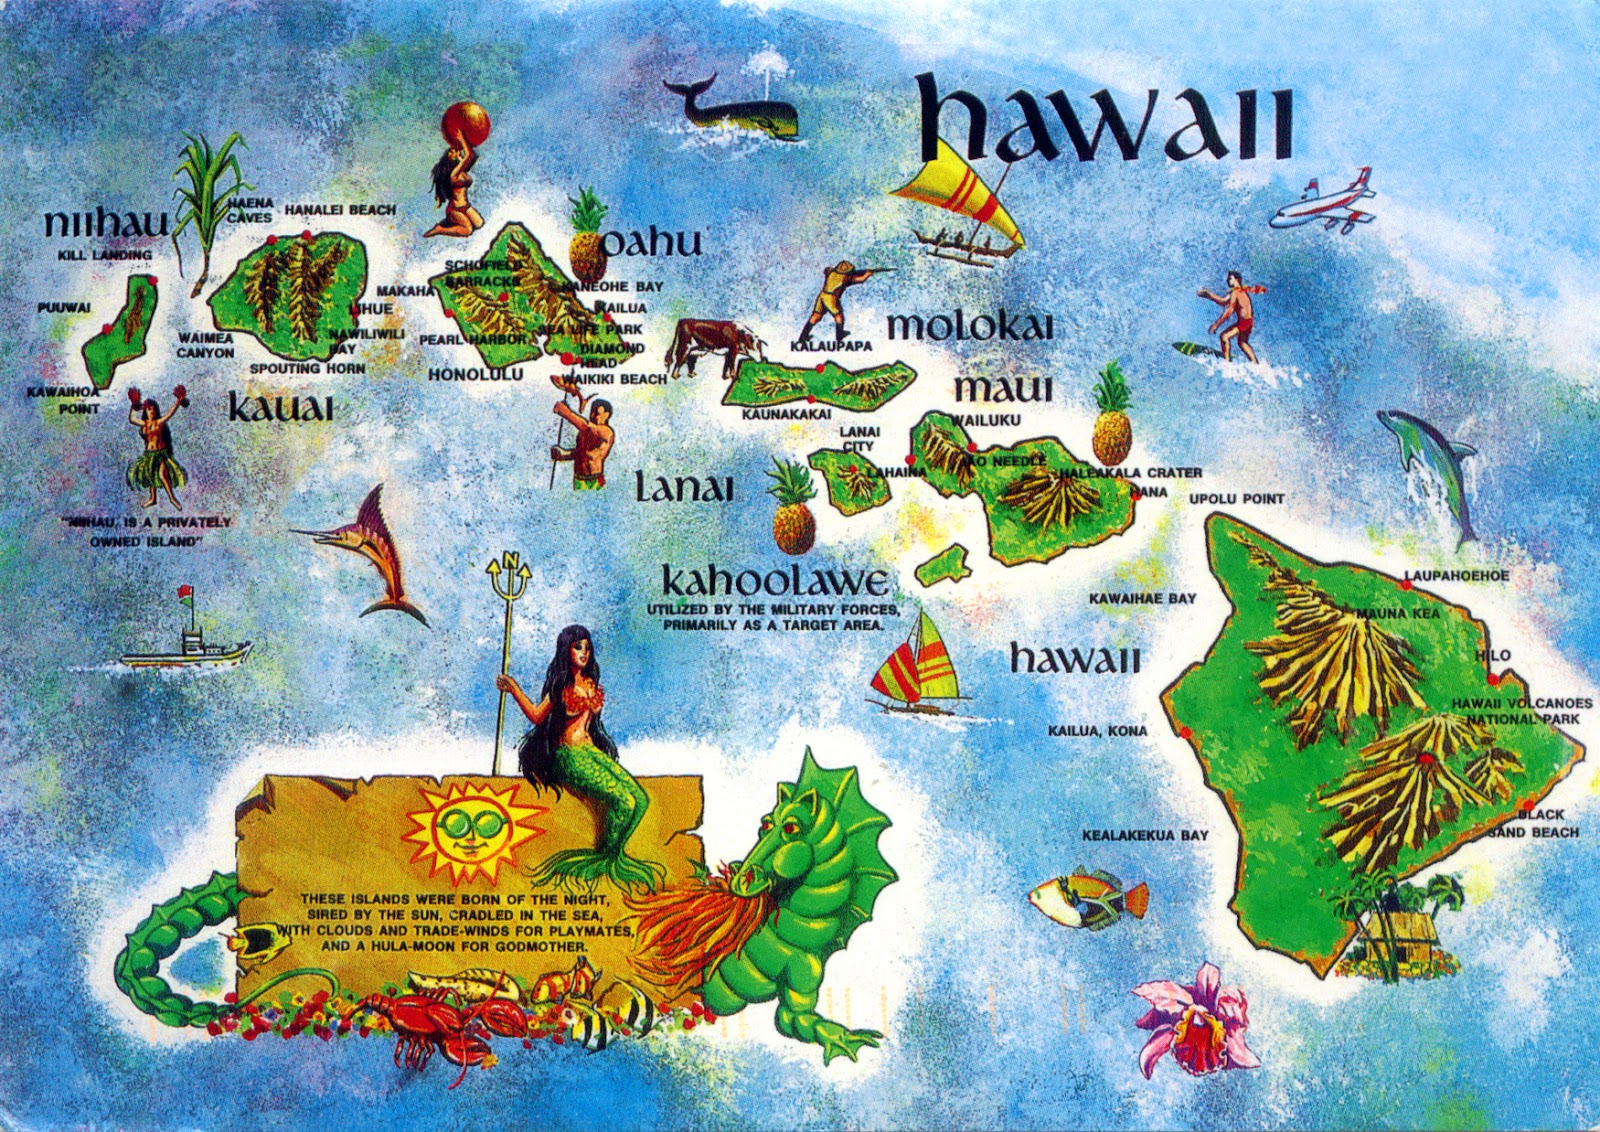 (Hawaiian Islands)